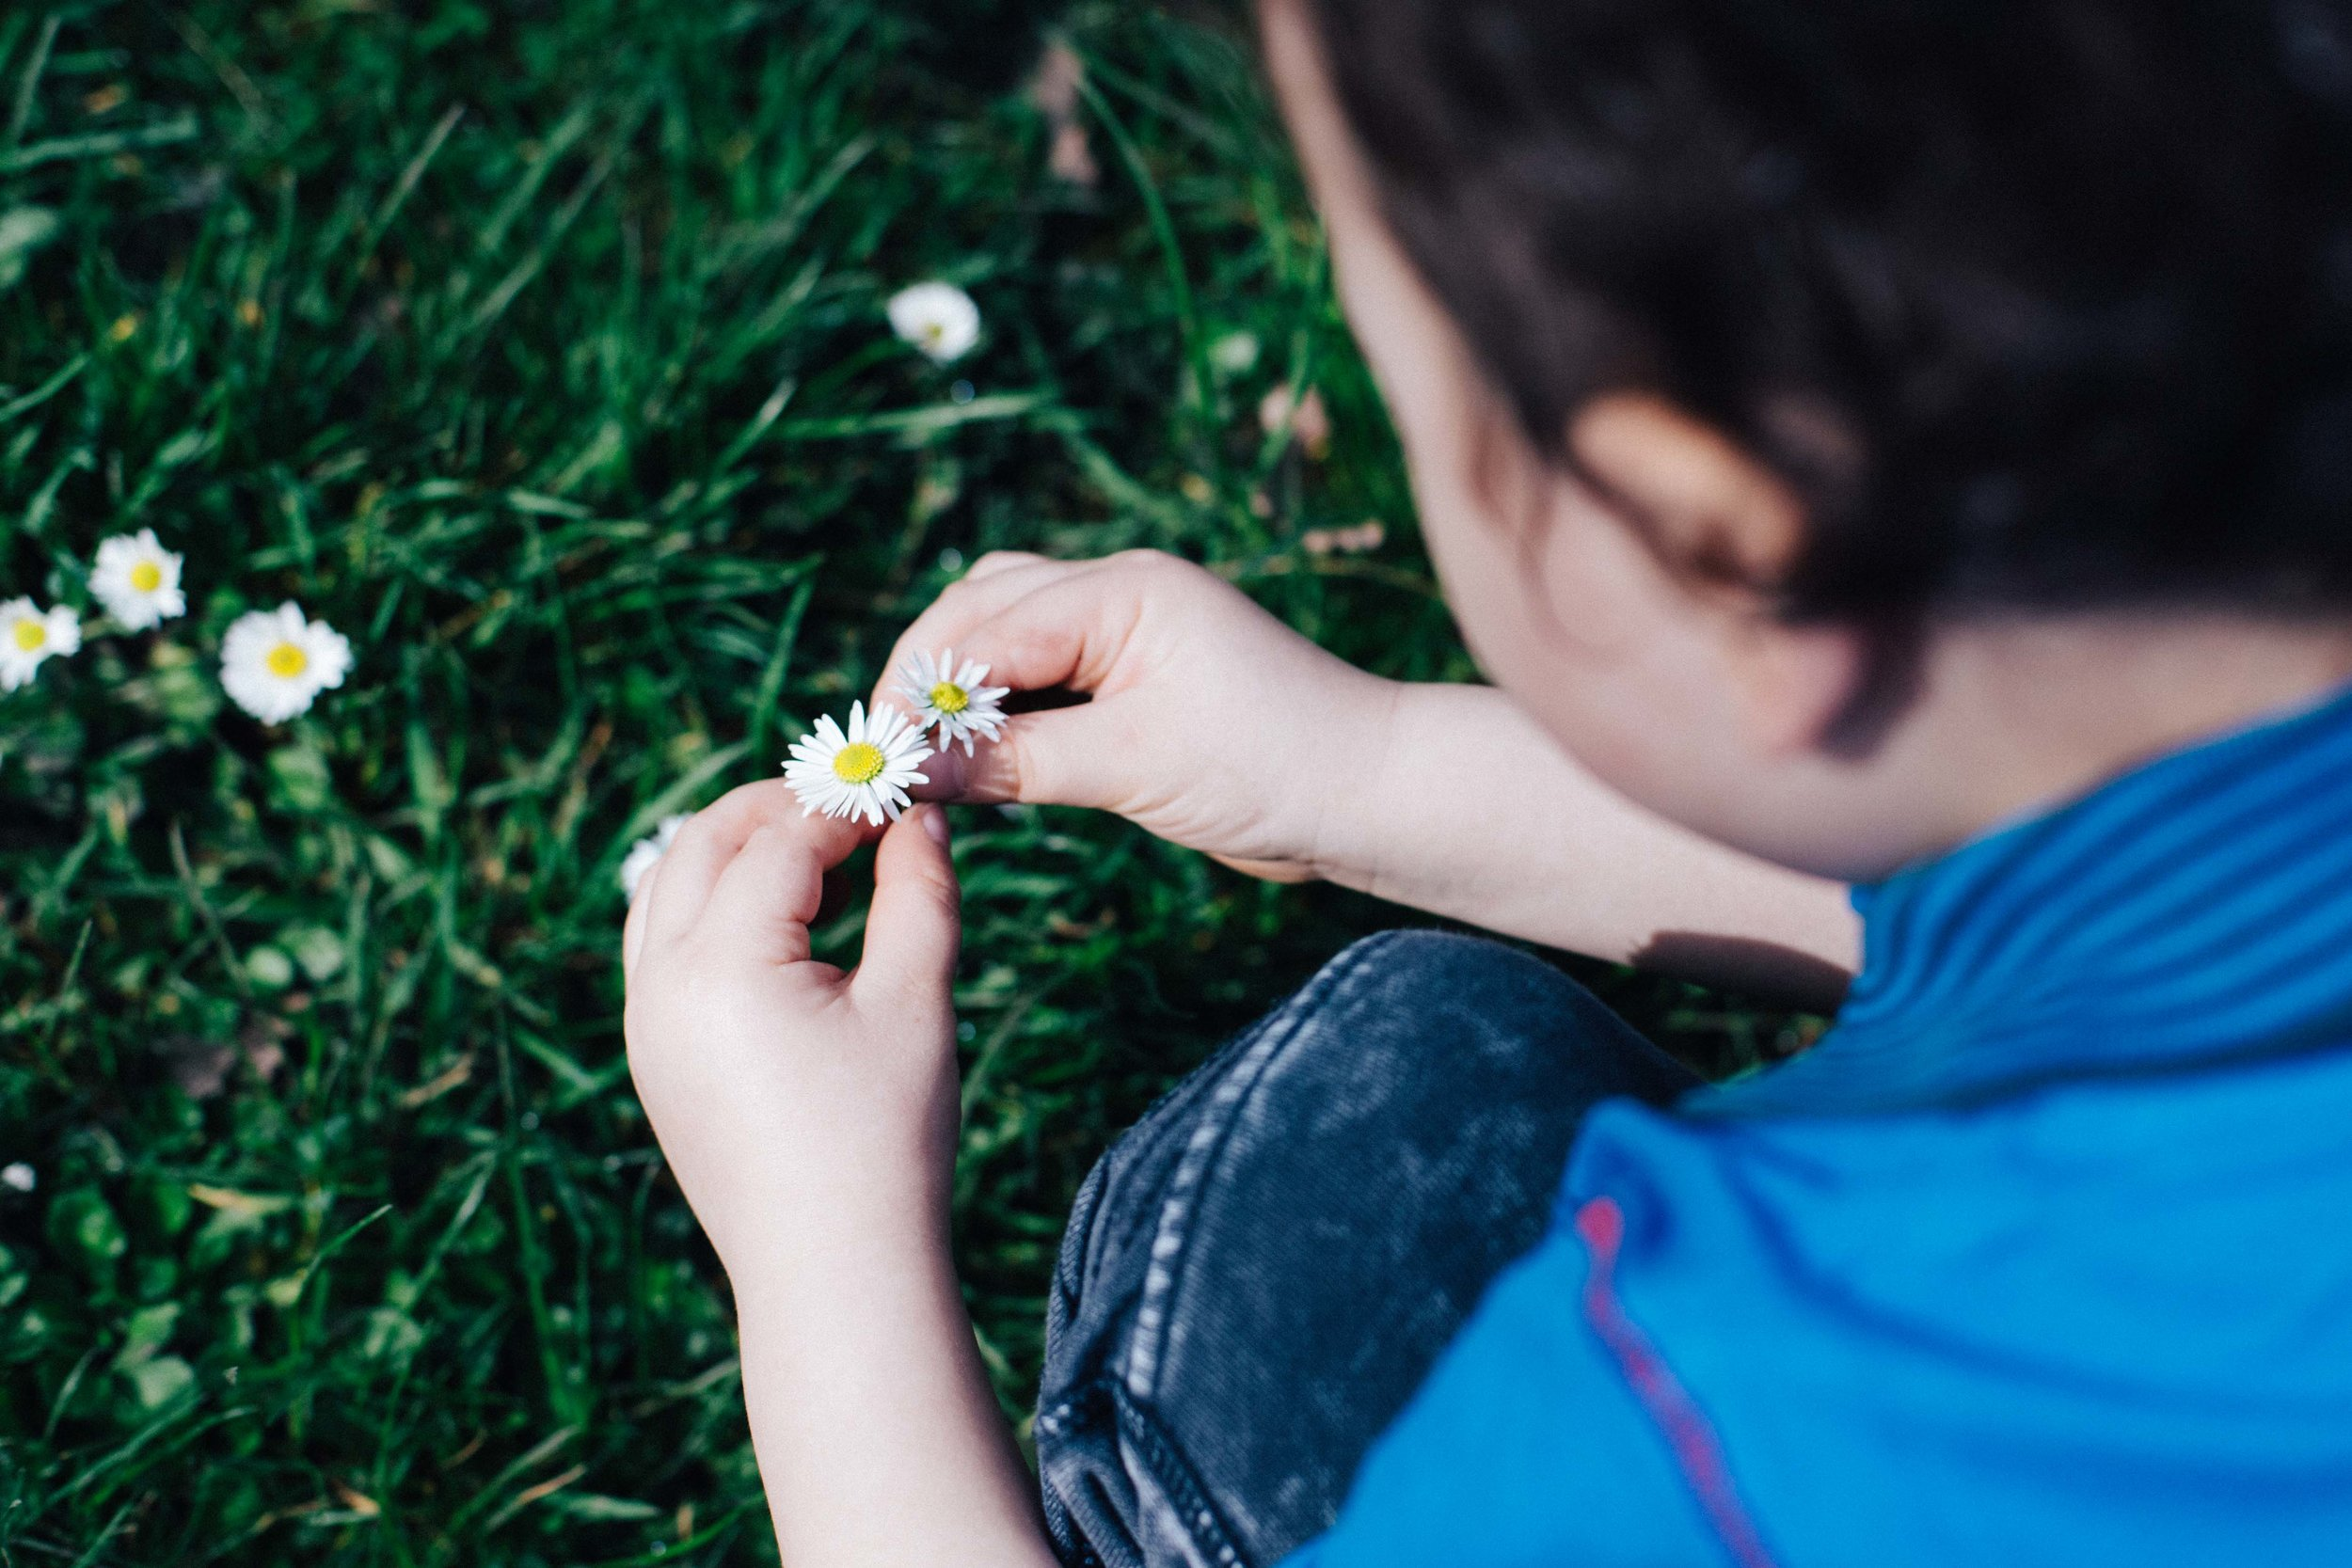 Boy playing with flowers at the Horseman Museum, Forrest Hill during children photography photo session in London